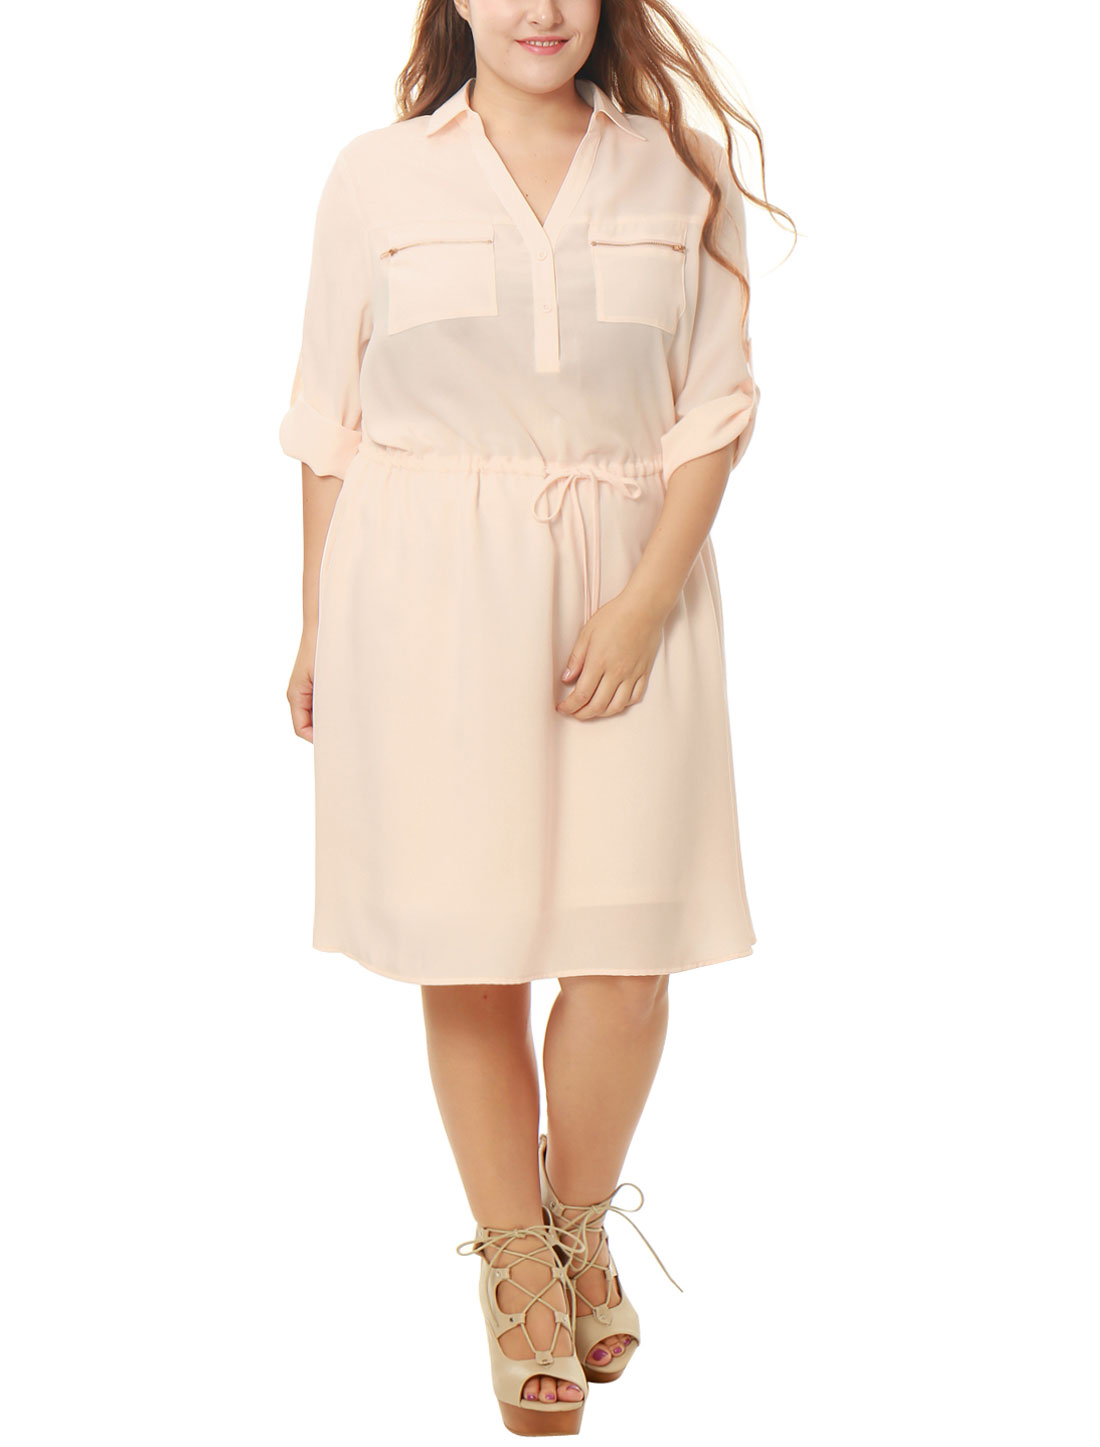 Women Plus Size Drawstring Waist Roll Up Sleeves Dress Pink 3X